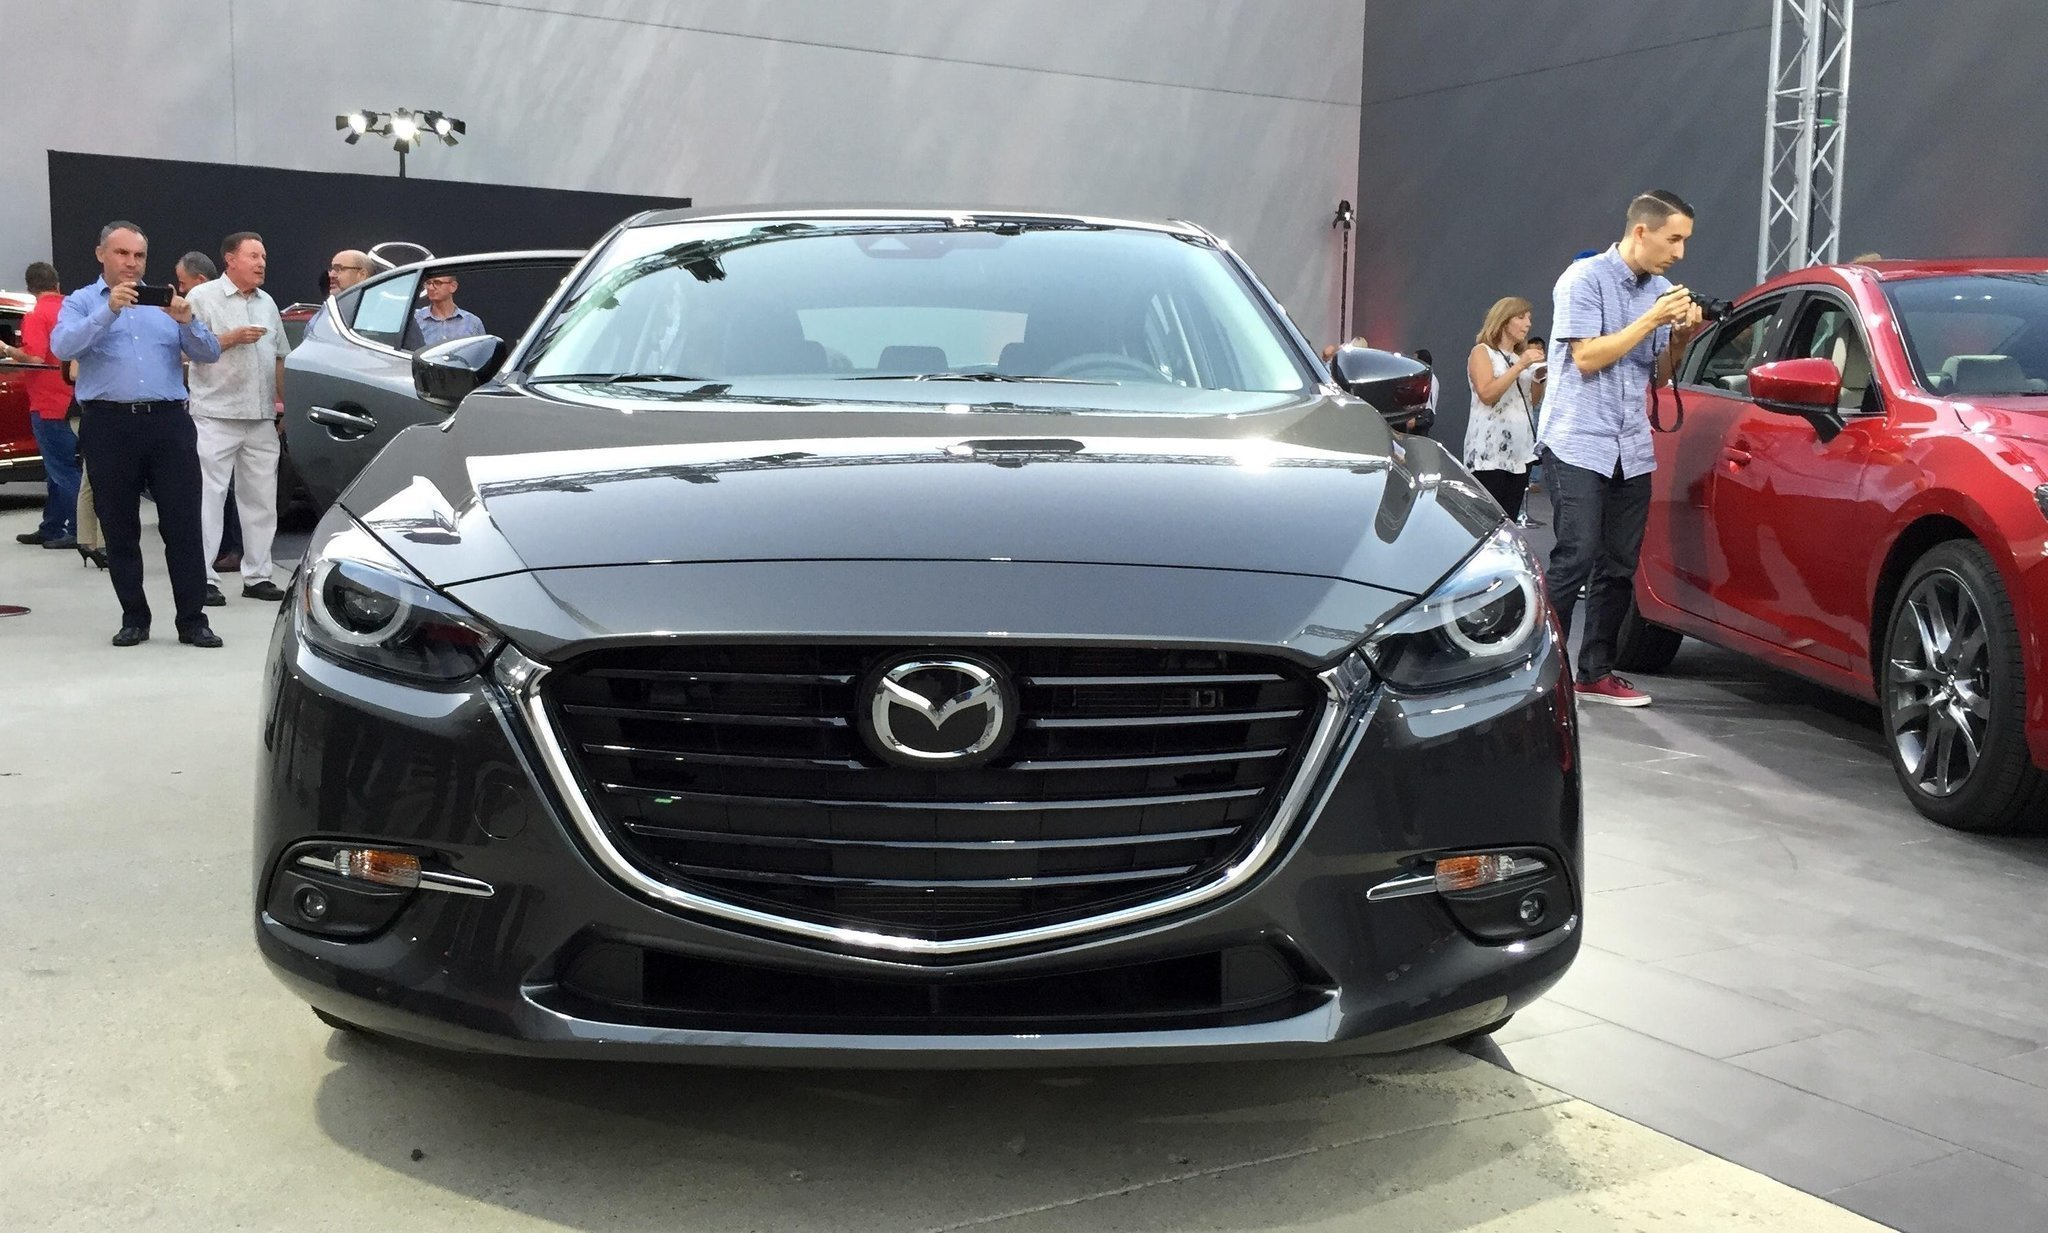 Mazda S Preview Party To Show Off The Major Refresh Of 2017 Mazda3 And Mazda6 San Go Union Tribune